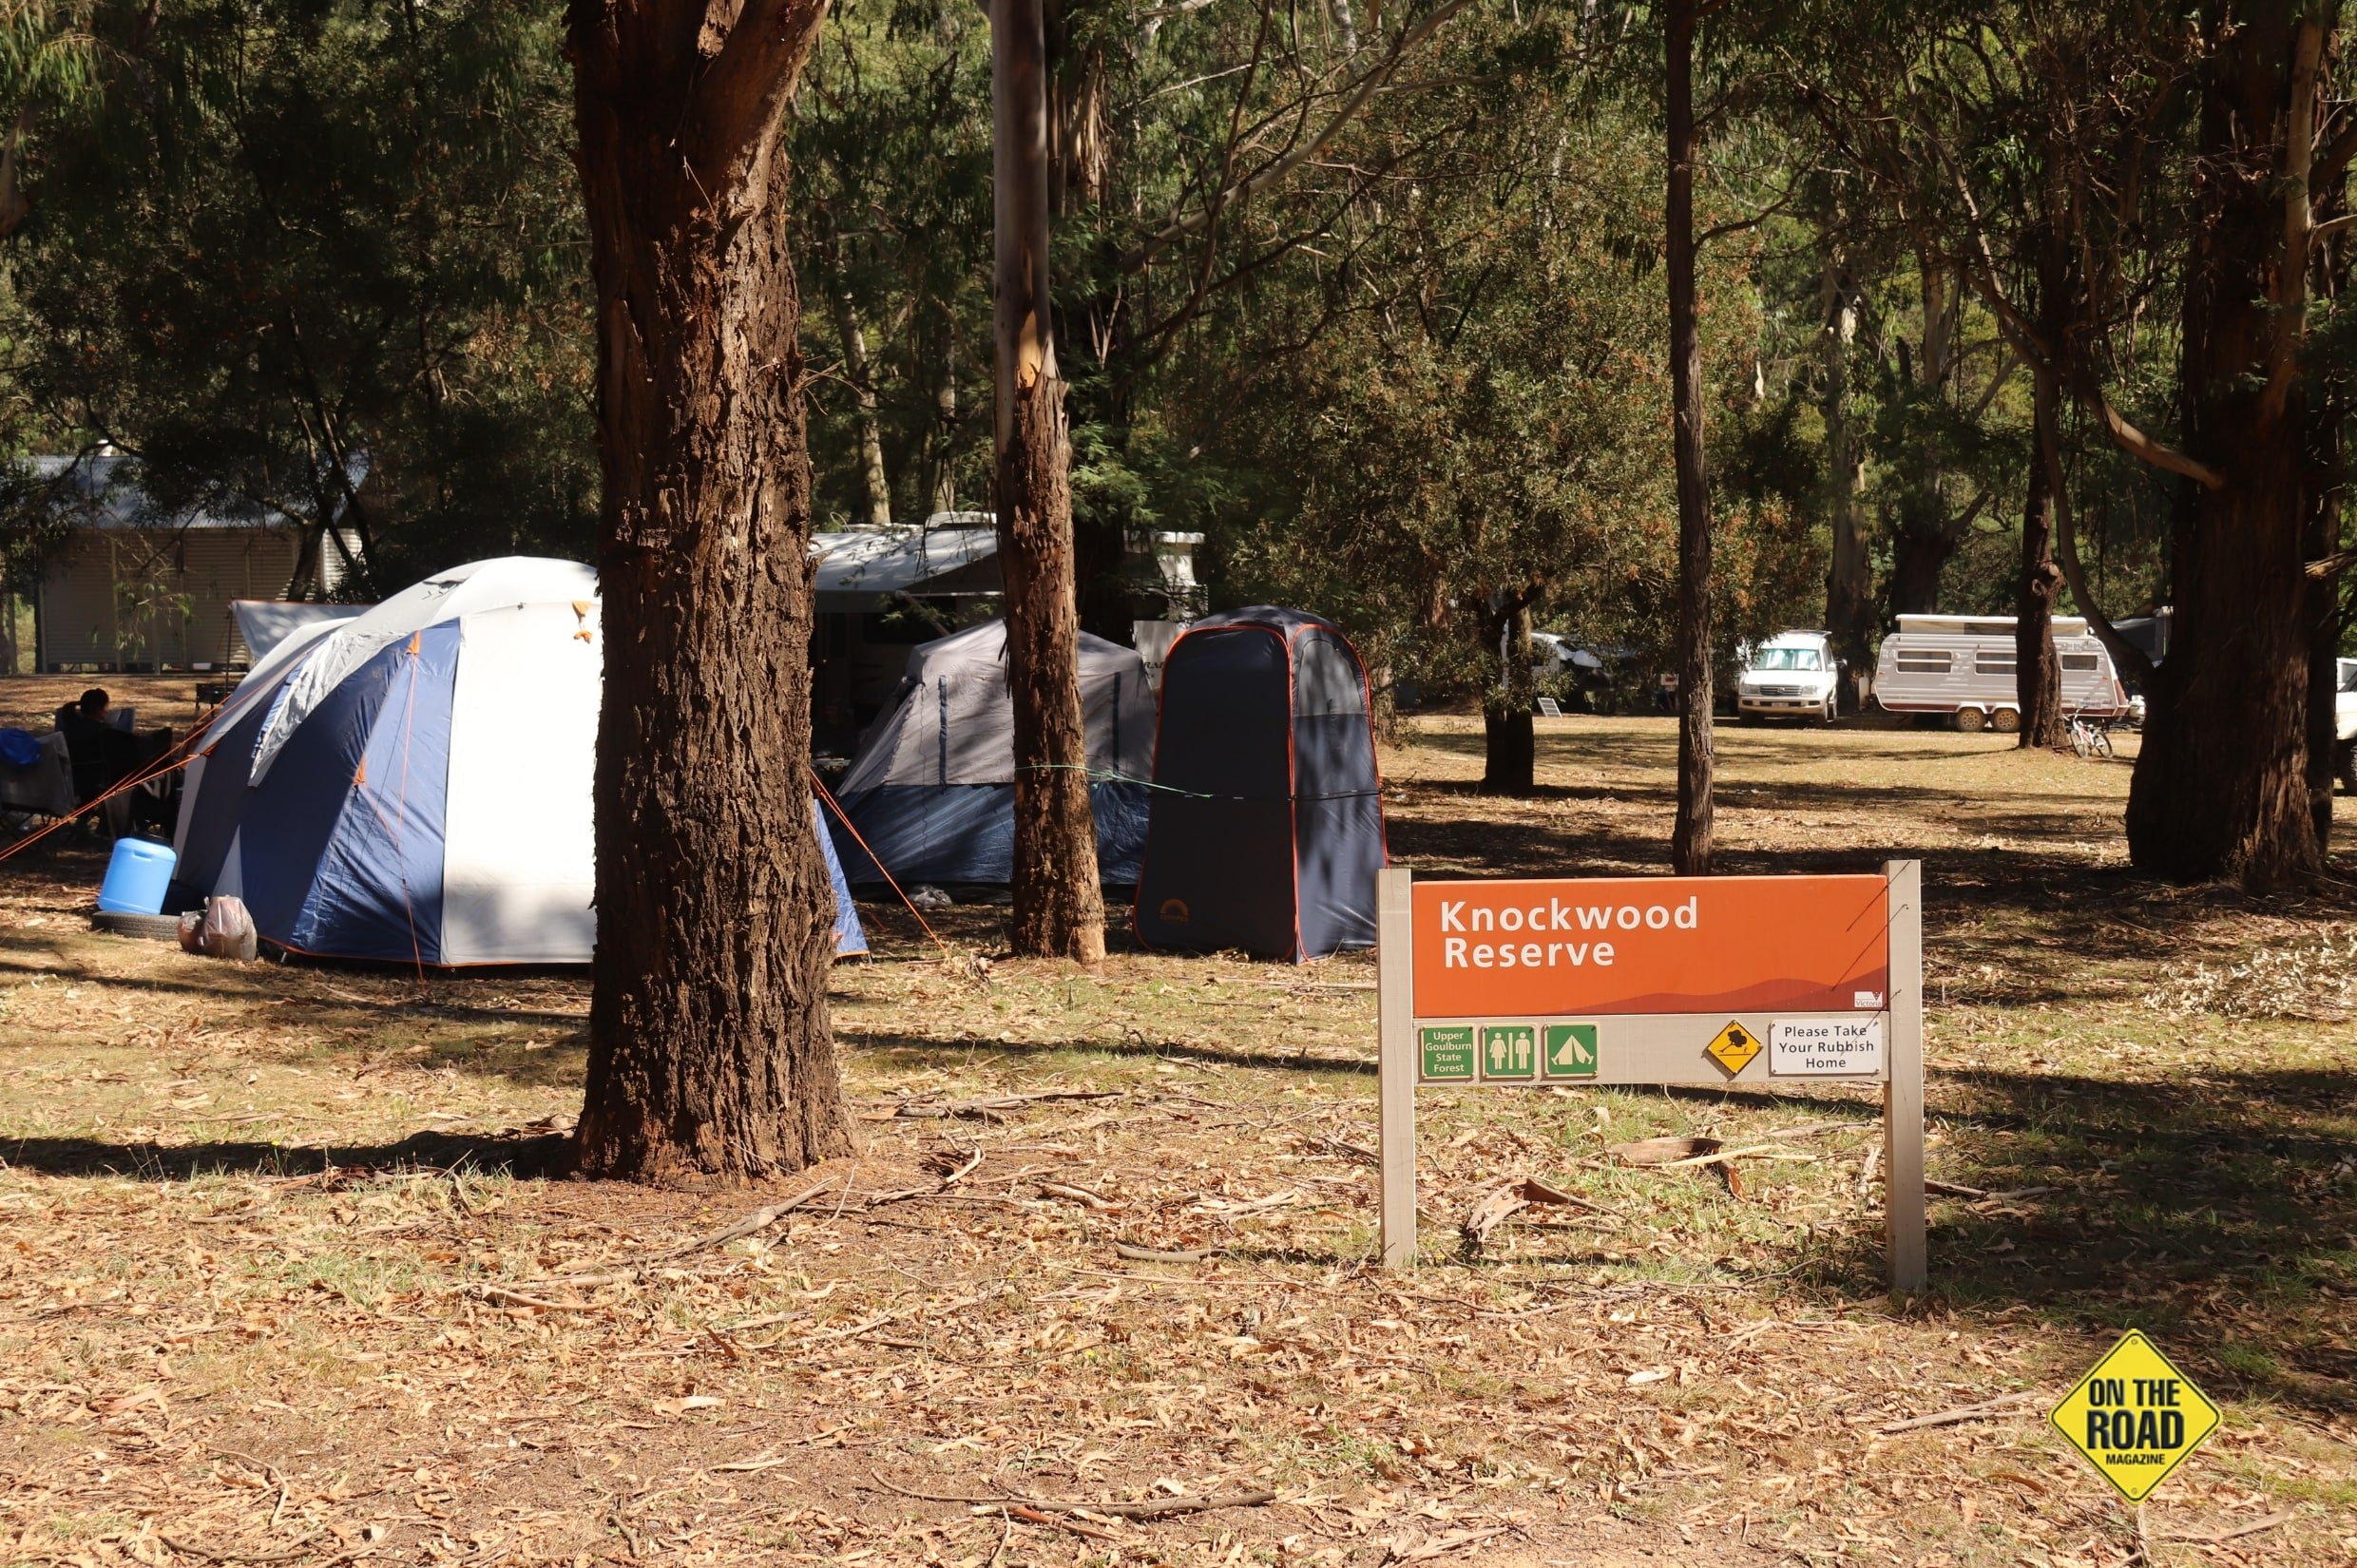 Camping among the trees at Knockwood Reserve